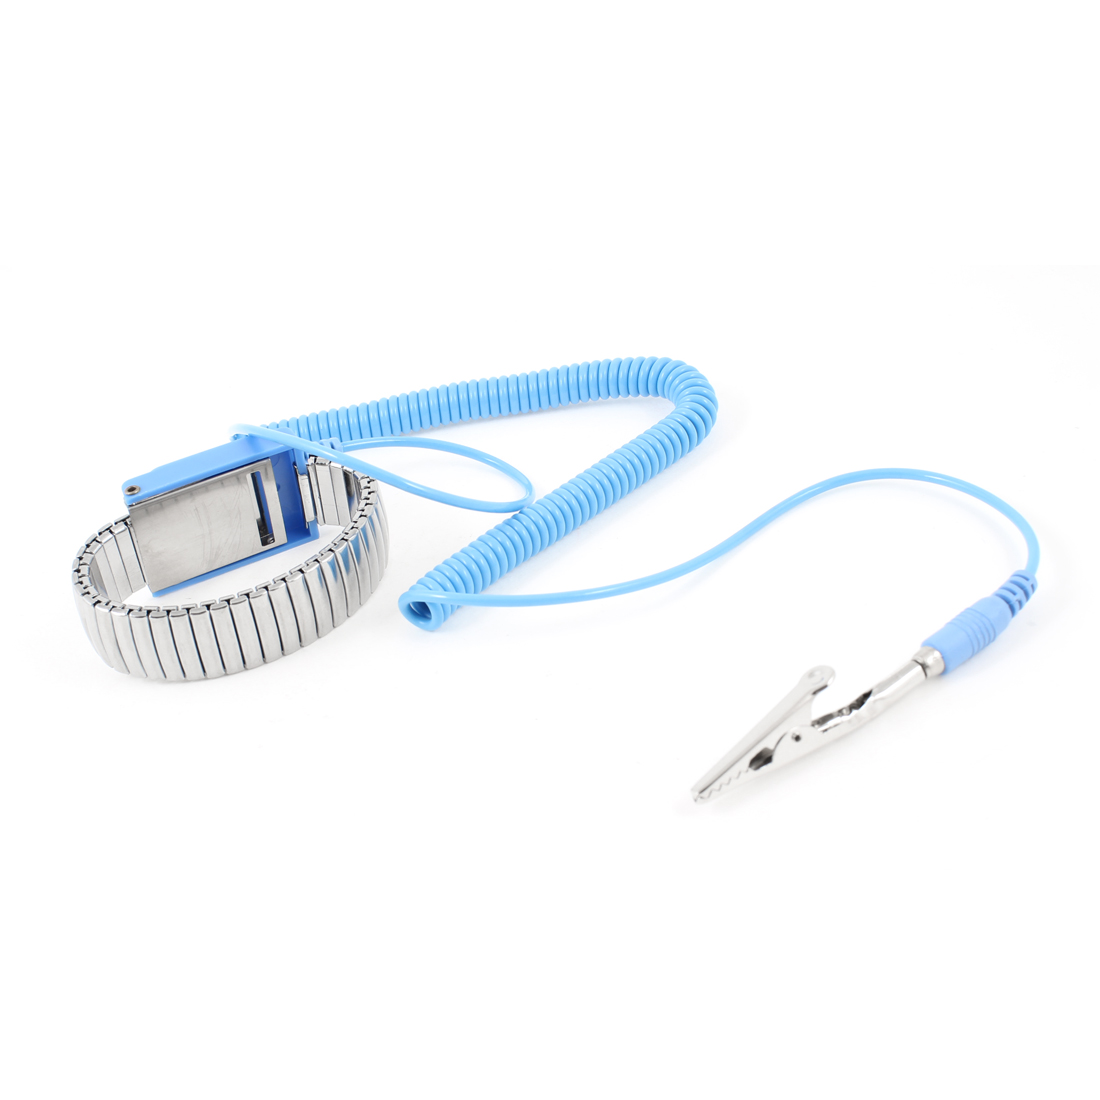 Antistatic ESD Wrist Band Metal Adjustable Grounding Bracelet Strap Blue